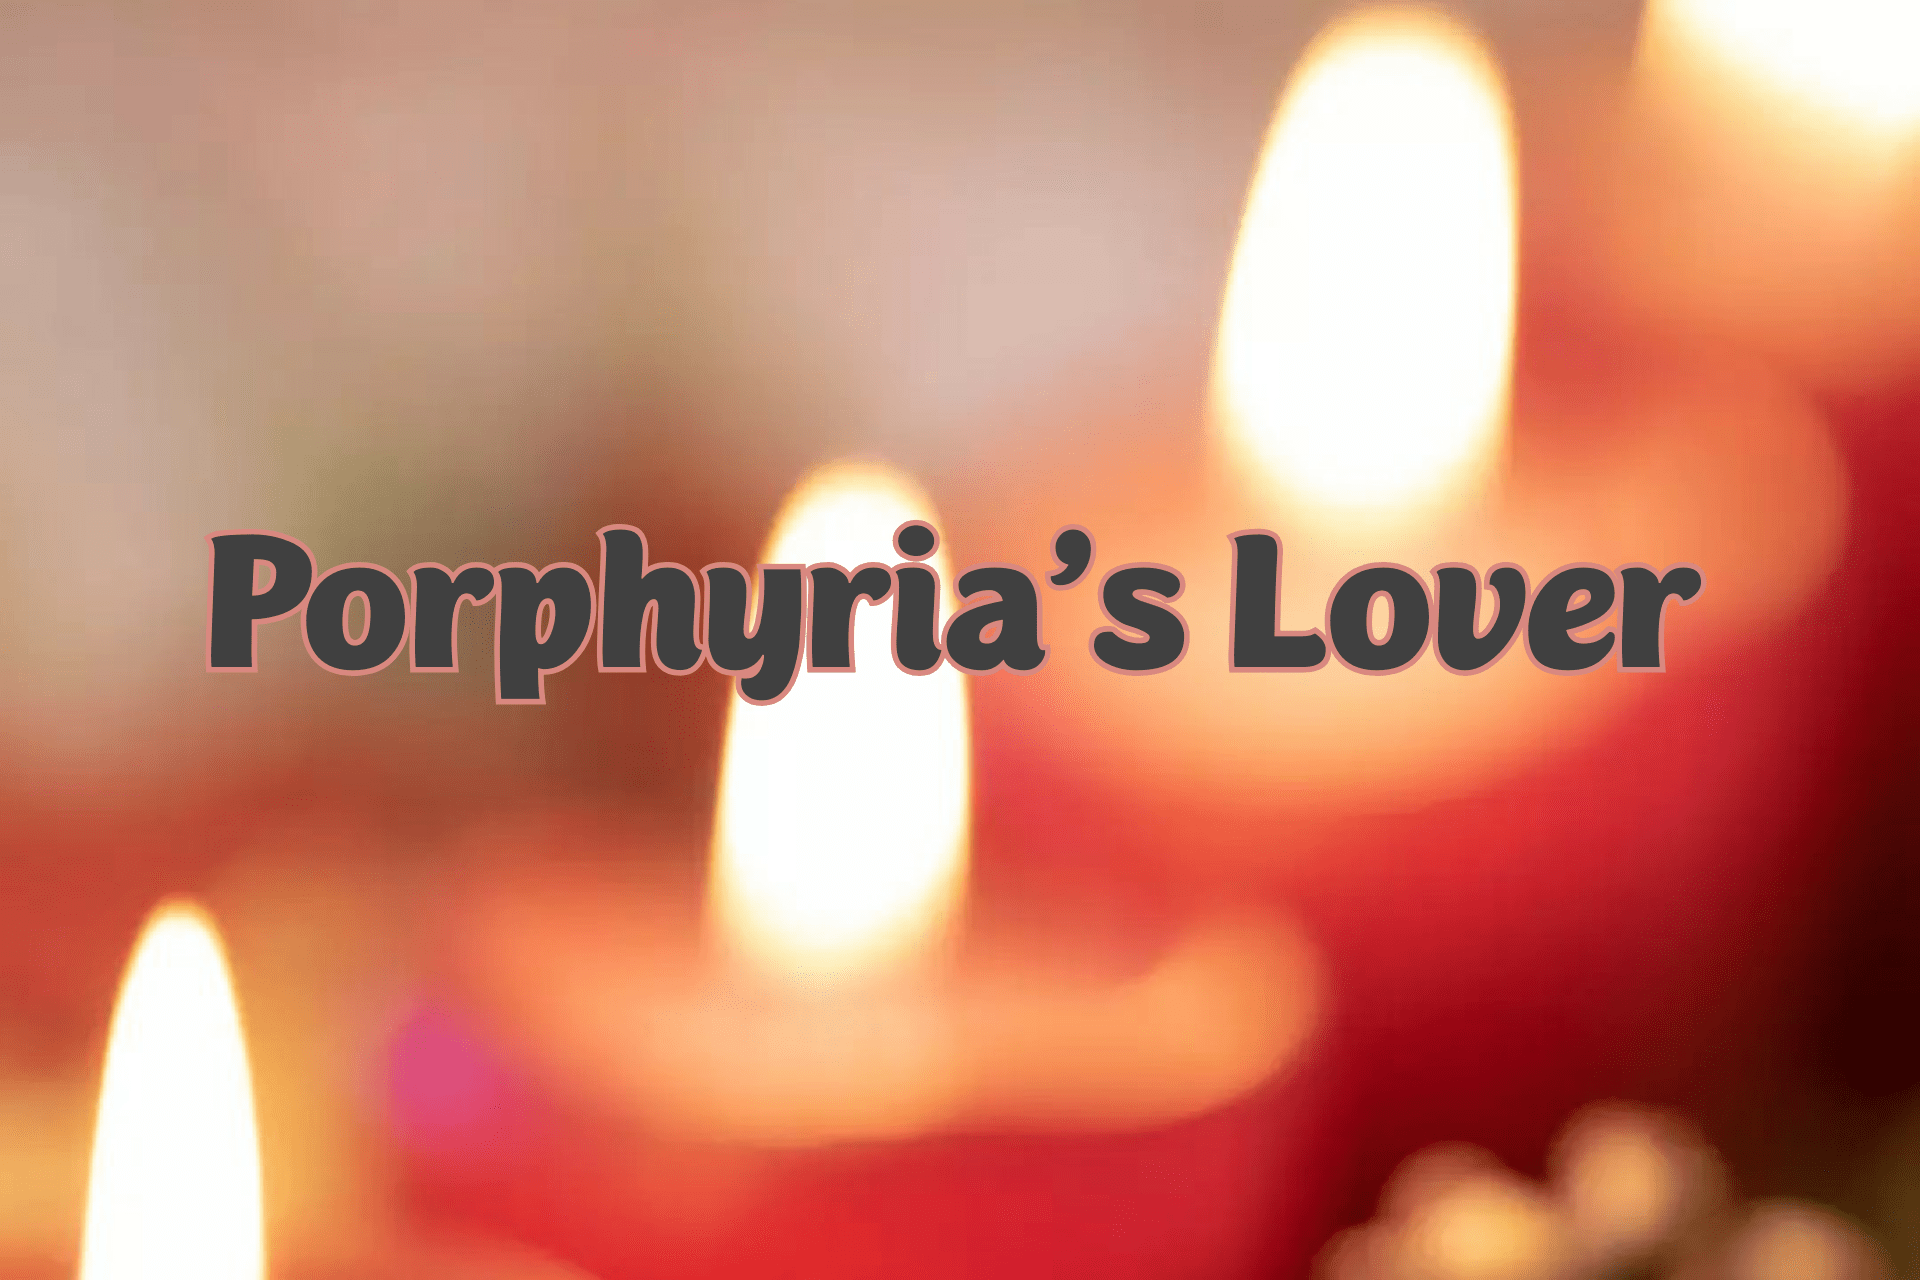 Porphyria's Lover: Summary, Analysis and Questions 2